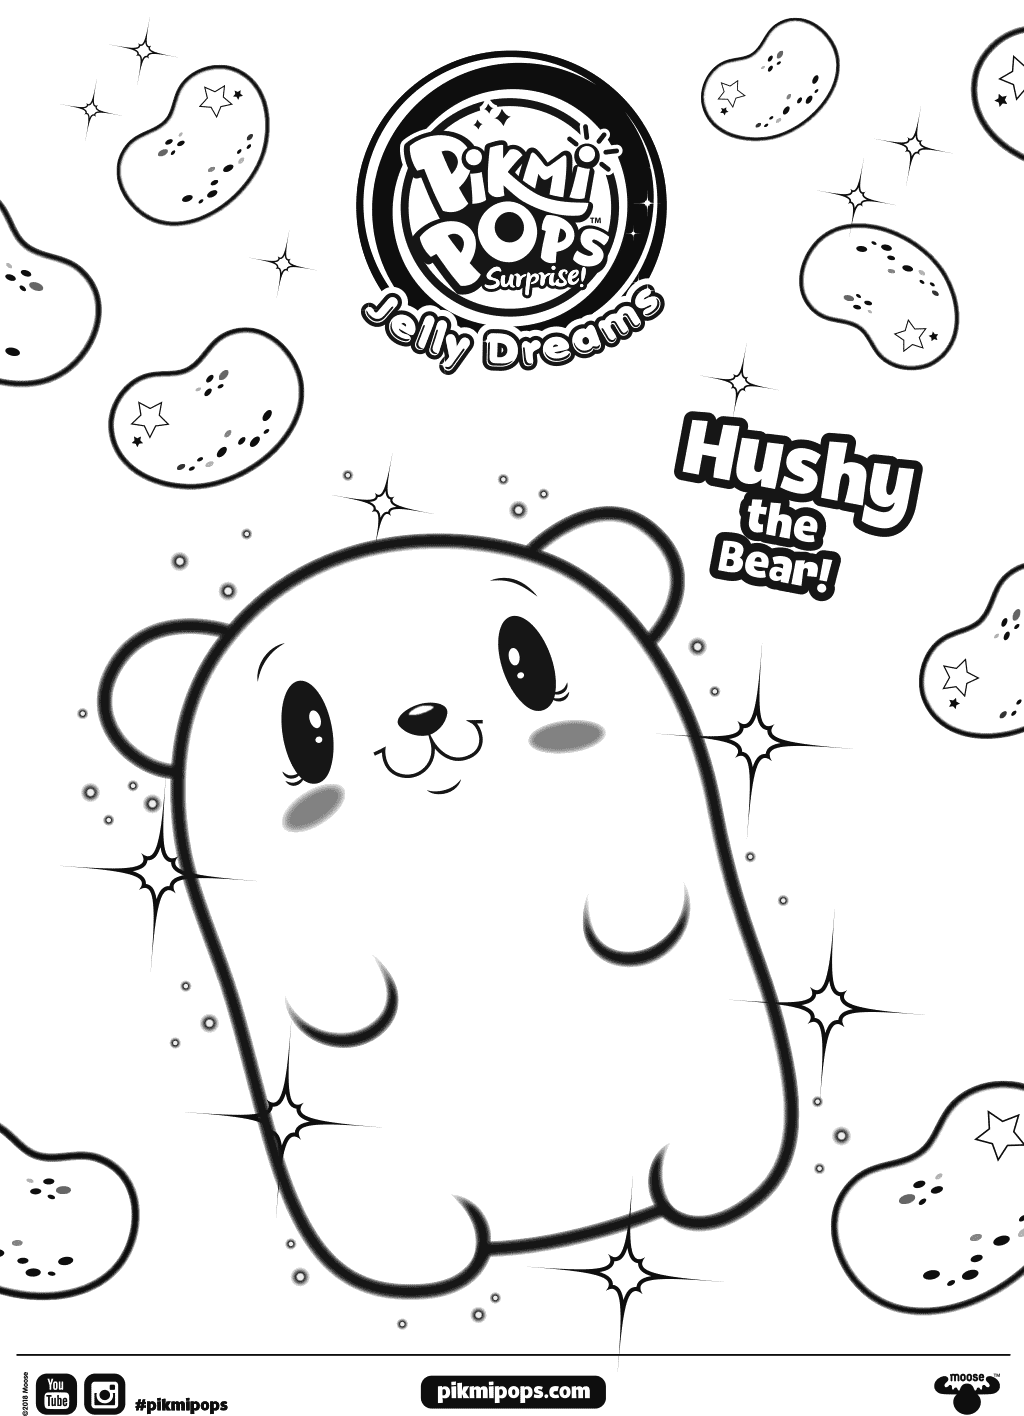 Hushy Pikmi Pops Coloring Pages